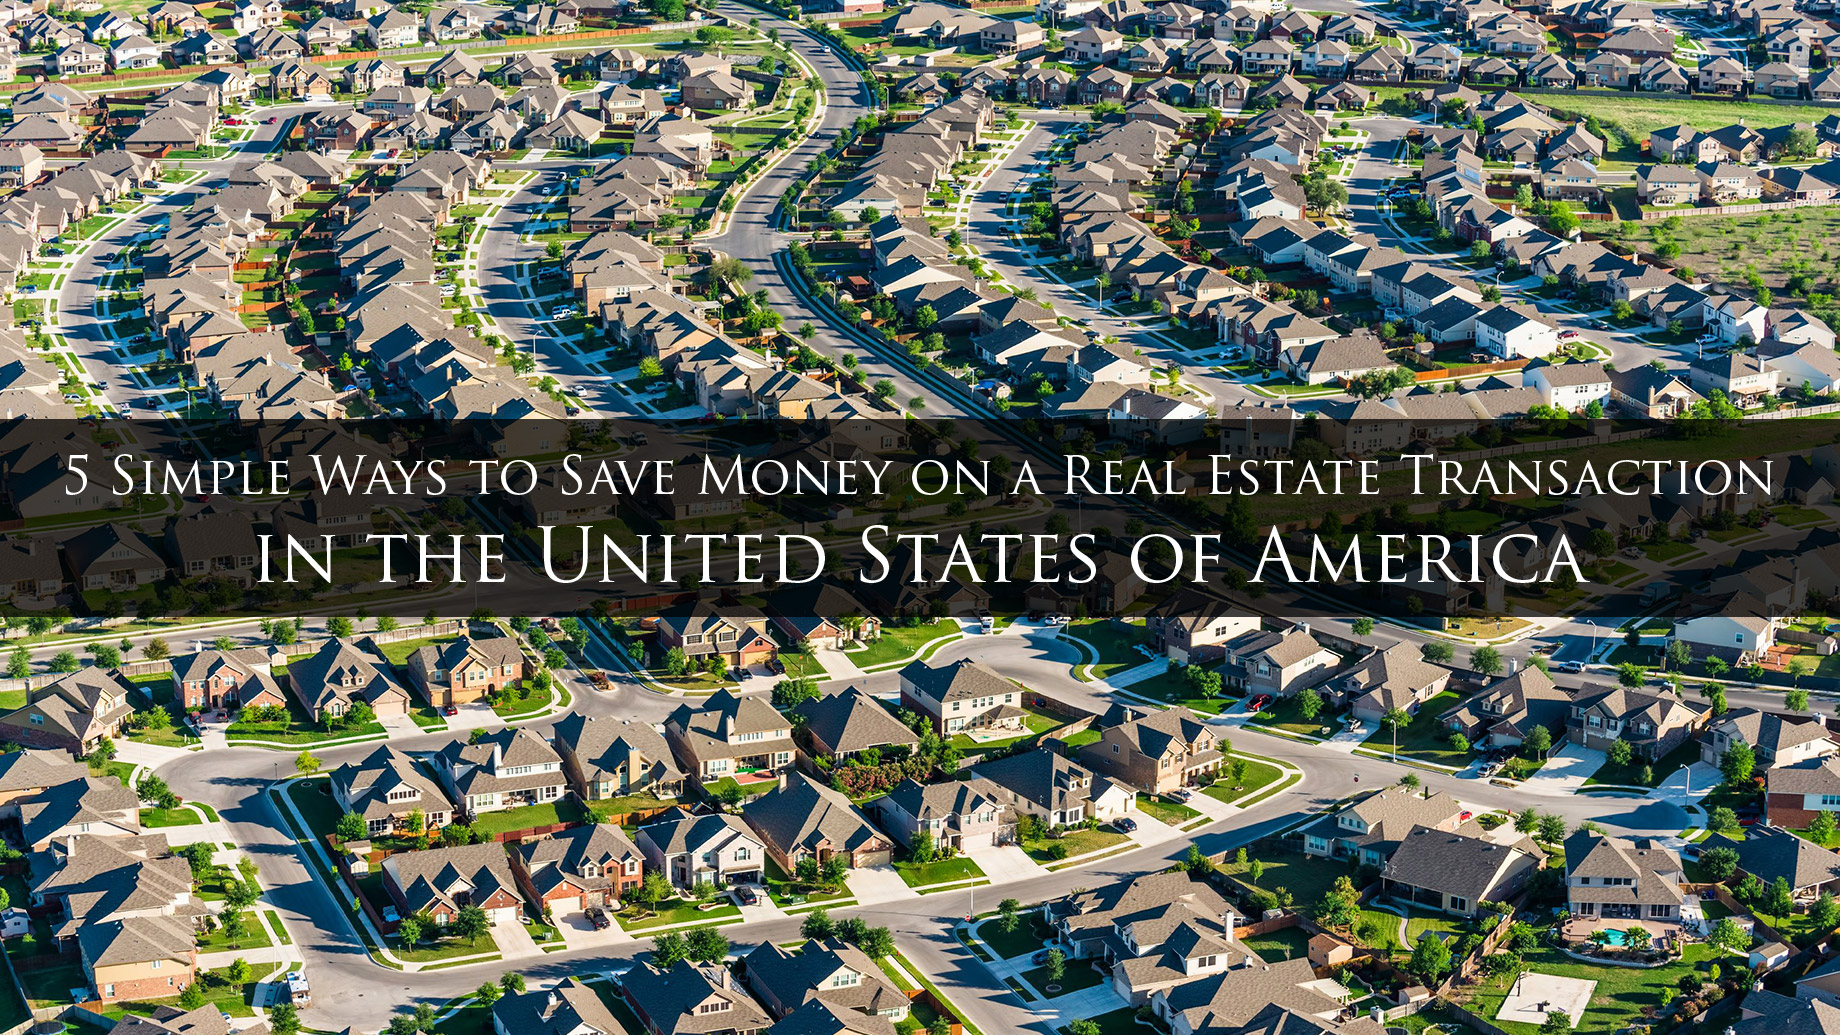 5 Simple Ways to Save Money on a Real Estate Transaction in the United States